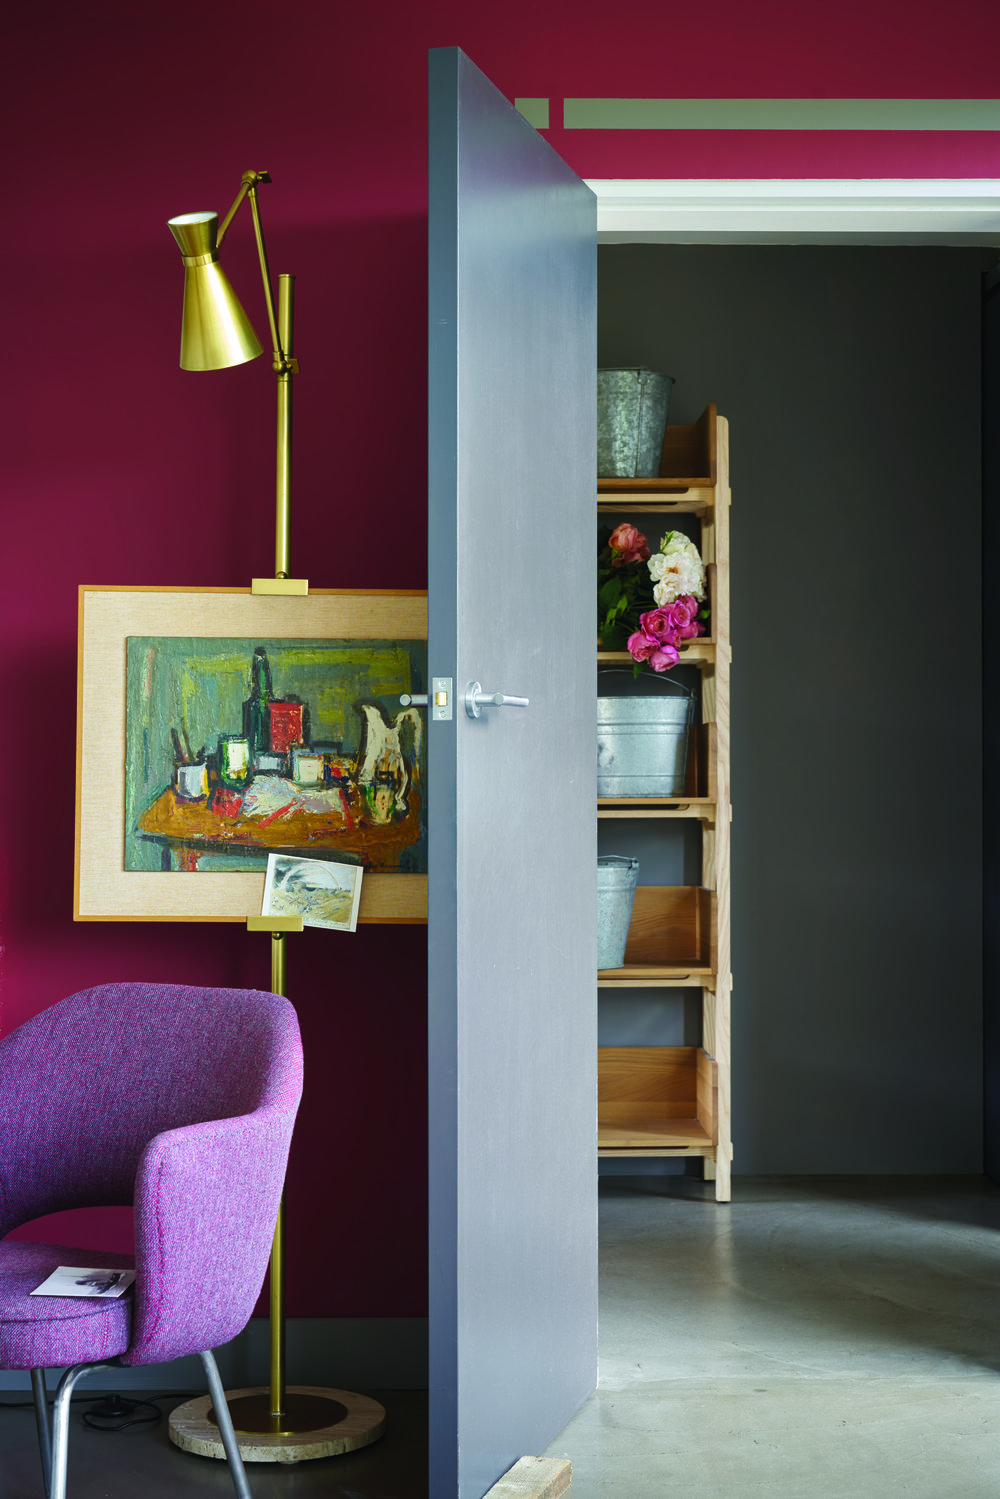 Image courtesy of Farrow & Ball